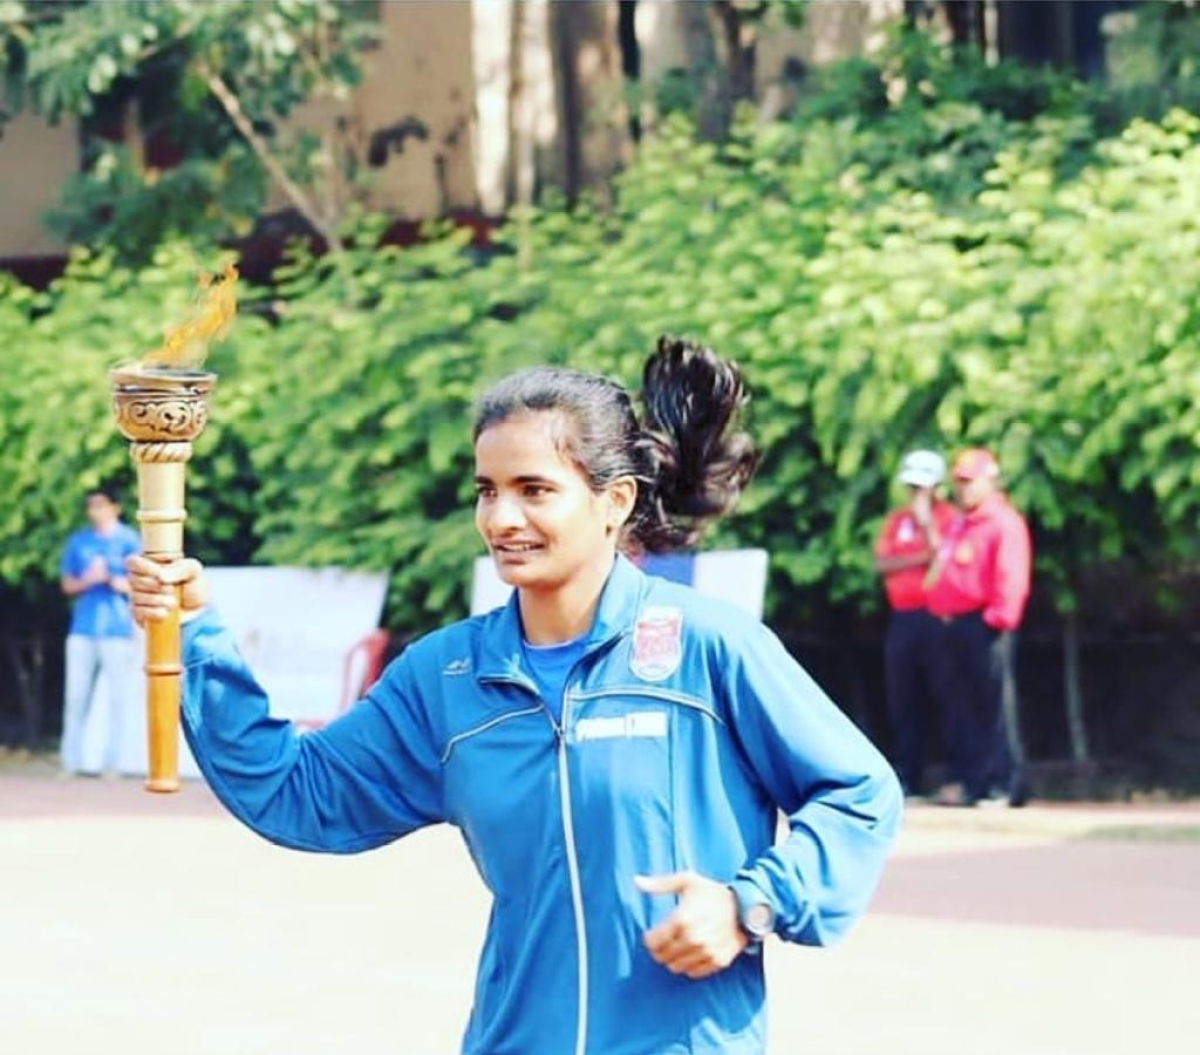 SWR's athlete AT Daneshwari qualifies for world athletics relays team